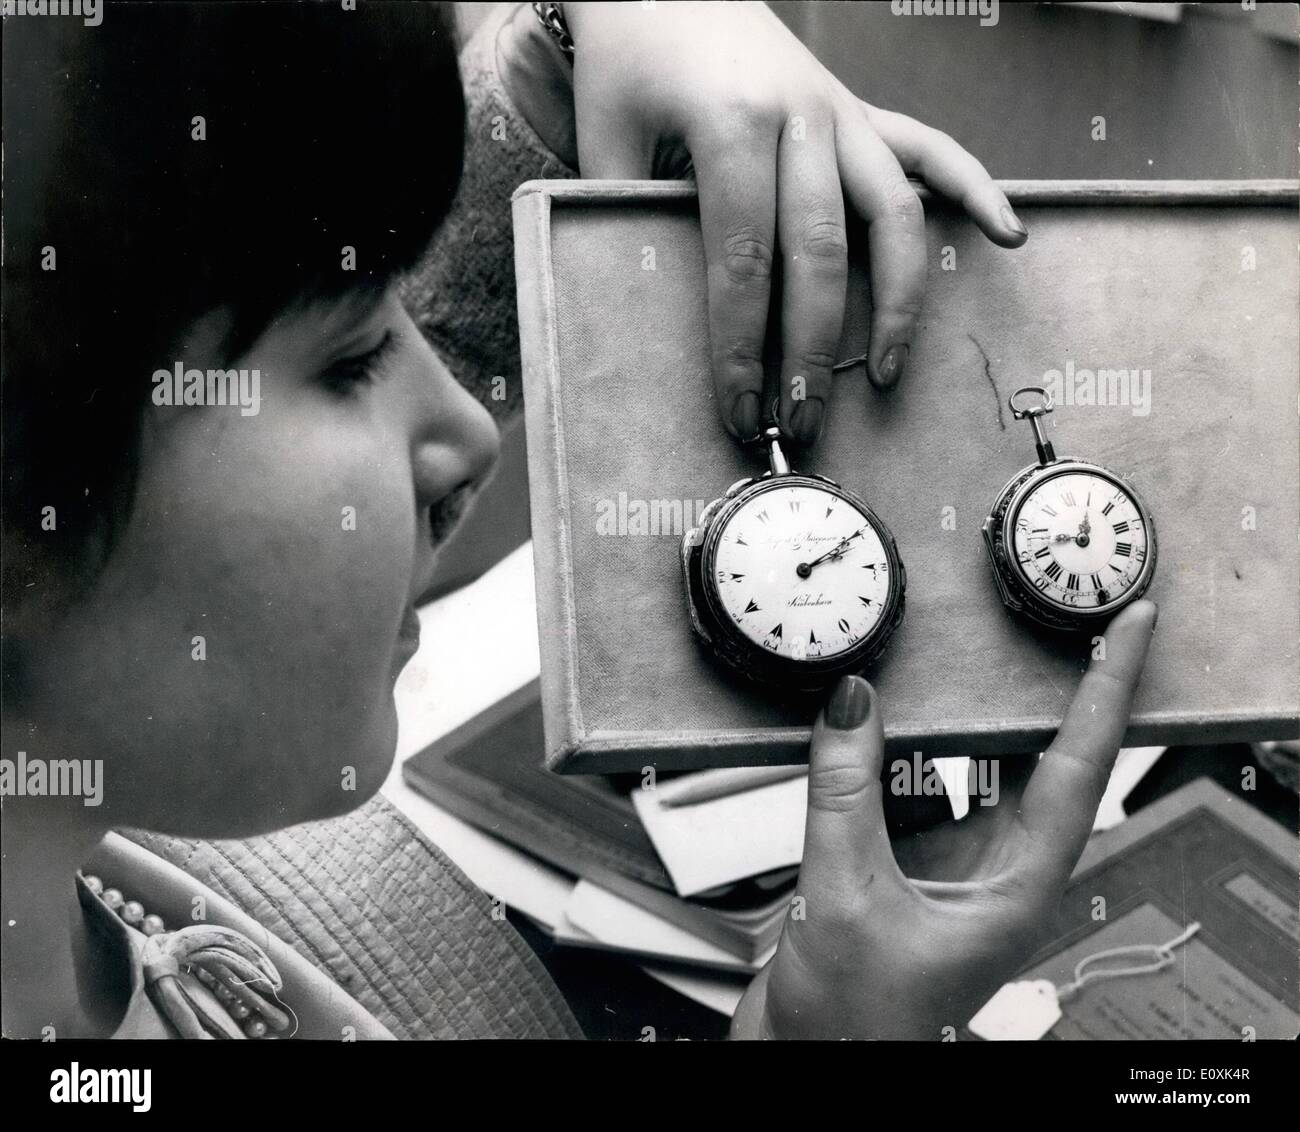 May 05, 1967 - TO BE SOLD BY AUCTION.: PHOTO SHOWS:- Two of the items which will be included in the sale of fine watches and table clocks which takes place at Sotheby's on May 22nd (ON LEFT). A rare Danish clock watch for the Turkish market by Larpent Jurgensen of Copenhagen, with verge movement, the white enamel dial with Turkish numerals, the gold inner case finely pieced and engraved with tortoiseshell and with scalloped edge, 62mm. diam. (Isaac Larpent and Jeorgen Jurgensan started a watch factory at Roskilde in 1780, which produced about 1500 watches - Stock Image